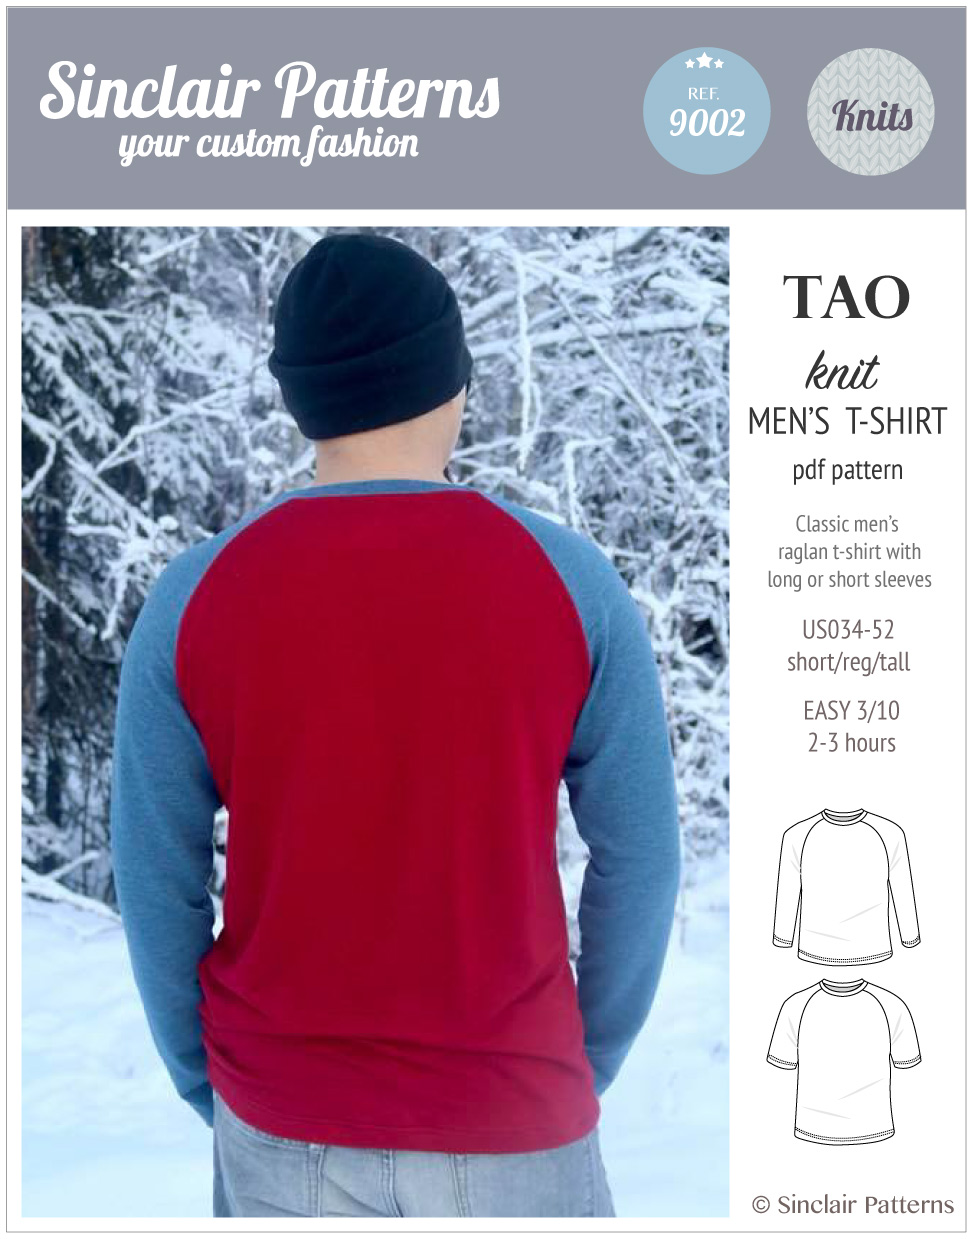 Sinclair Patterns - Pdf sewing pattern Tao classic raglan t-shirt for menPatterns - Pdf sewing pattern Tao classic raglan t-shirt for men